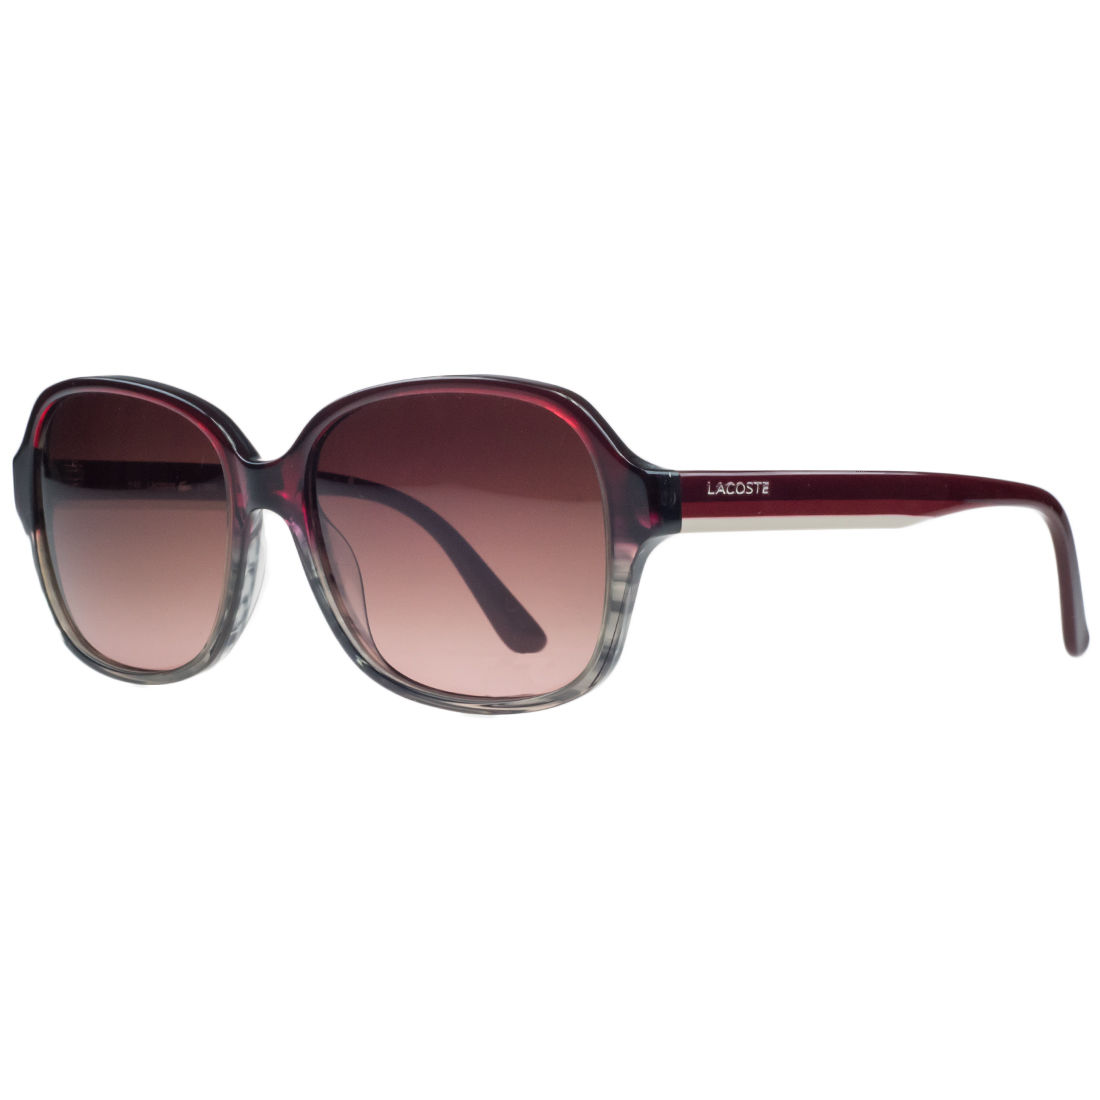 Lacoste L735/S 615 Red/ Brown Gradient Square Sunglasses